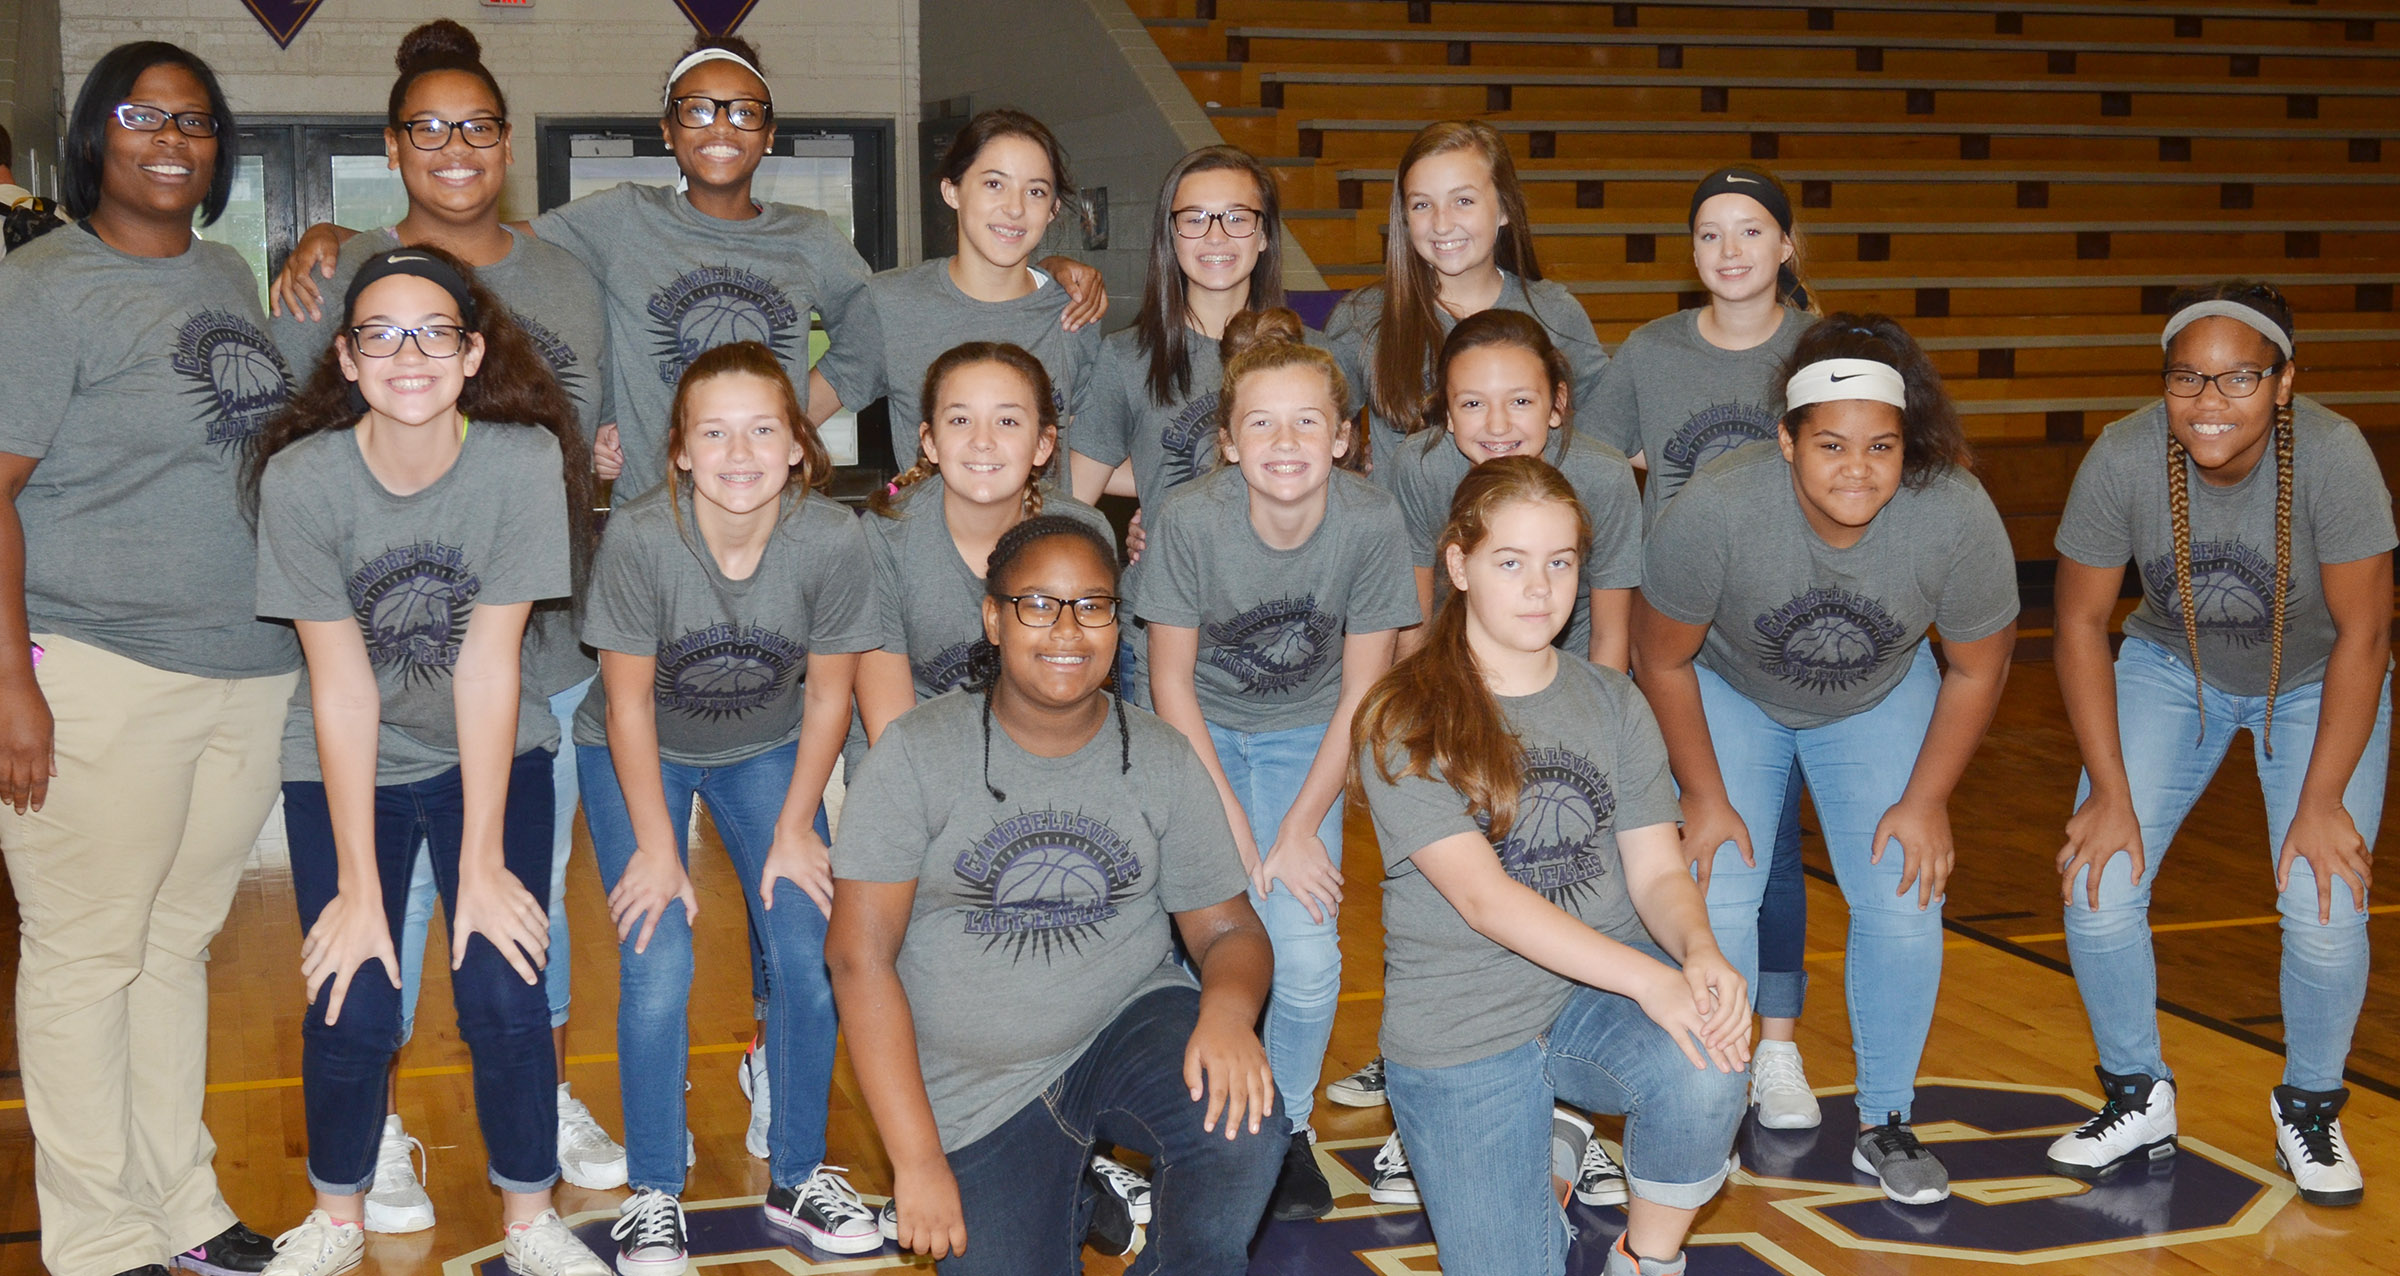 CMS girls' basketball players are honored at a pep rally. From left, front, are sixth-graders KyAshia Mitchell and Layla Steen. Second row, seventh-graders Mary Russell, BreAnna Humphress, Briana Davis, Dakota Slone, Bri Hayes, Asia Barbour and Antaya Epps. Back, head coach Tiarra Cecil and eighth-graders Brae Washington, Bri Gowdy, Kaylyn Smith, Tayler Thompson, Lainey Watson and Rylee Petett.